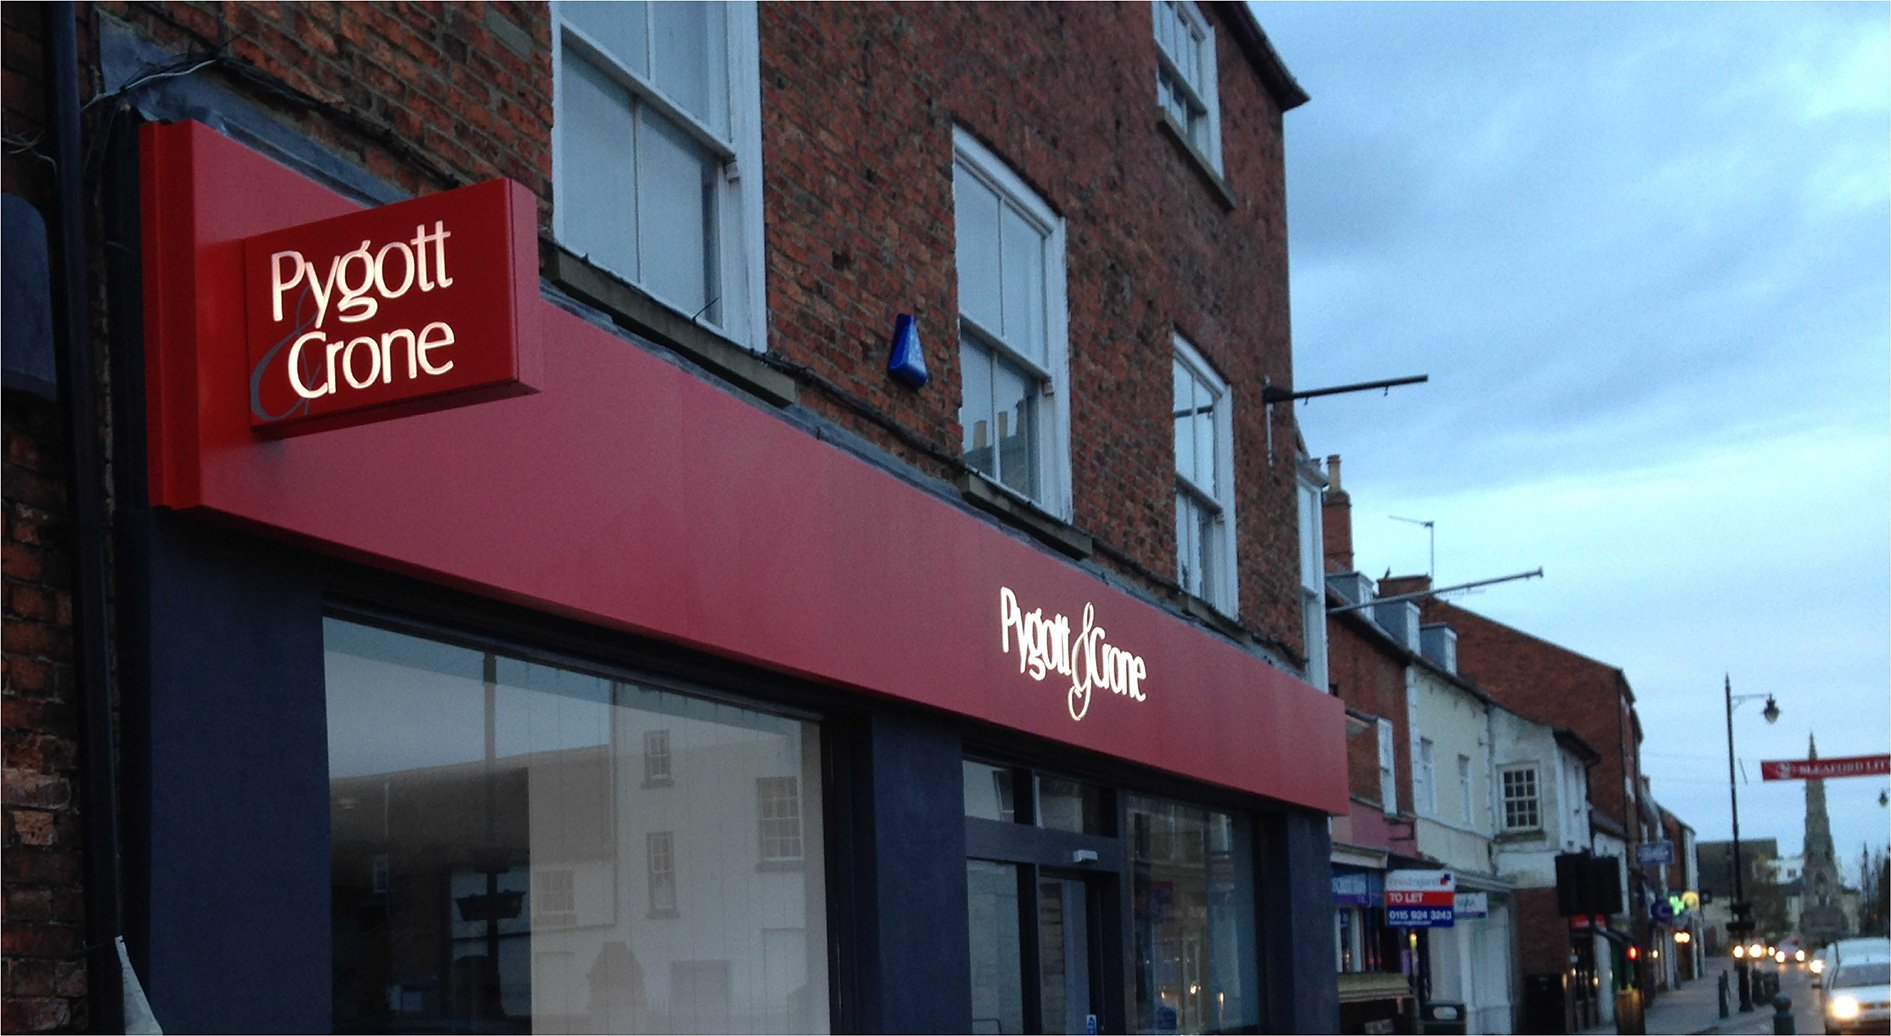 Pygott & Crone Estate Agents Signage - Sign Printing and Installation by Envirosigns Ltd